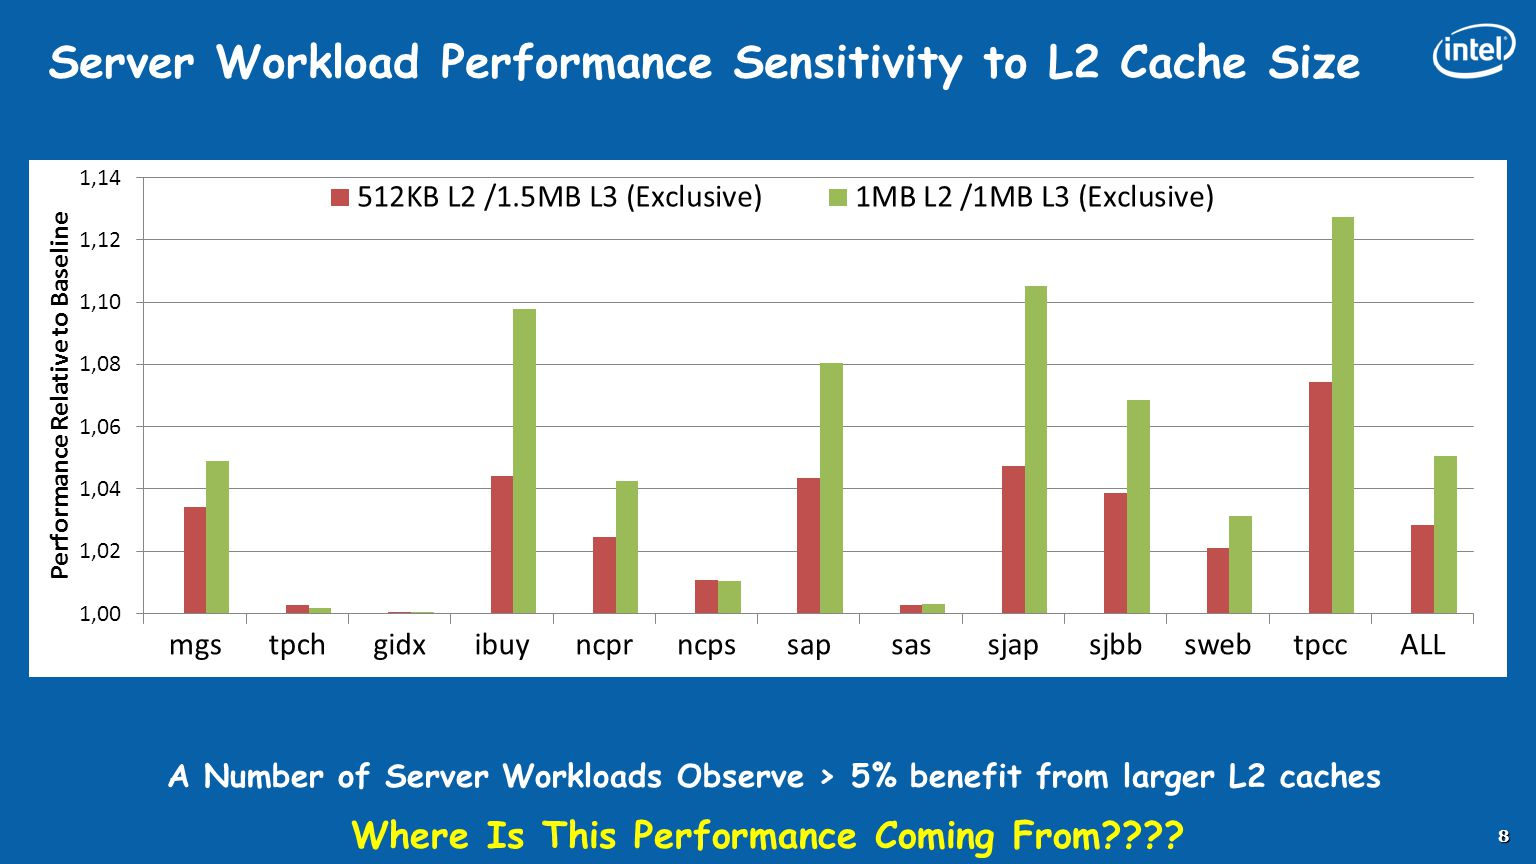 Server Workload Performance Sensitivity to L2 Cache Size